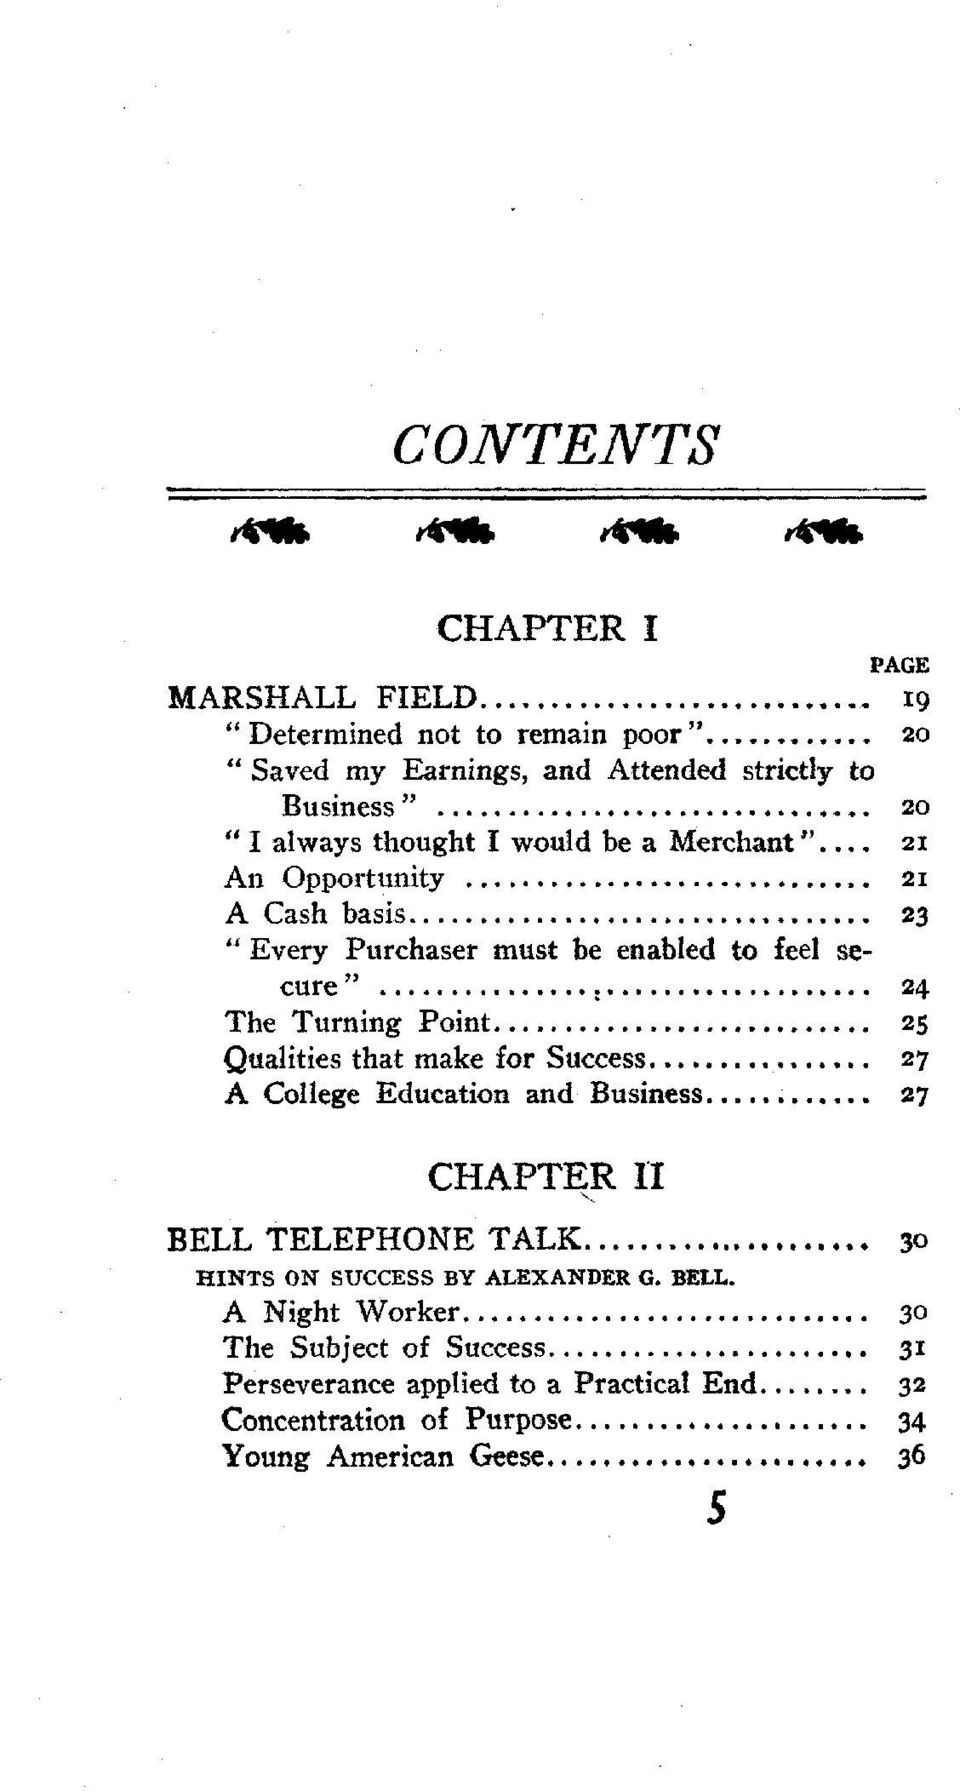 "... ~... "".. 27 CHAPTER II "" BELL TELEPHONE TALK 30 HINTS ON SUCCESS BY ALEXANDER G. BELL. A Night Worker... 30 The Subject of Success."